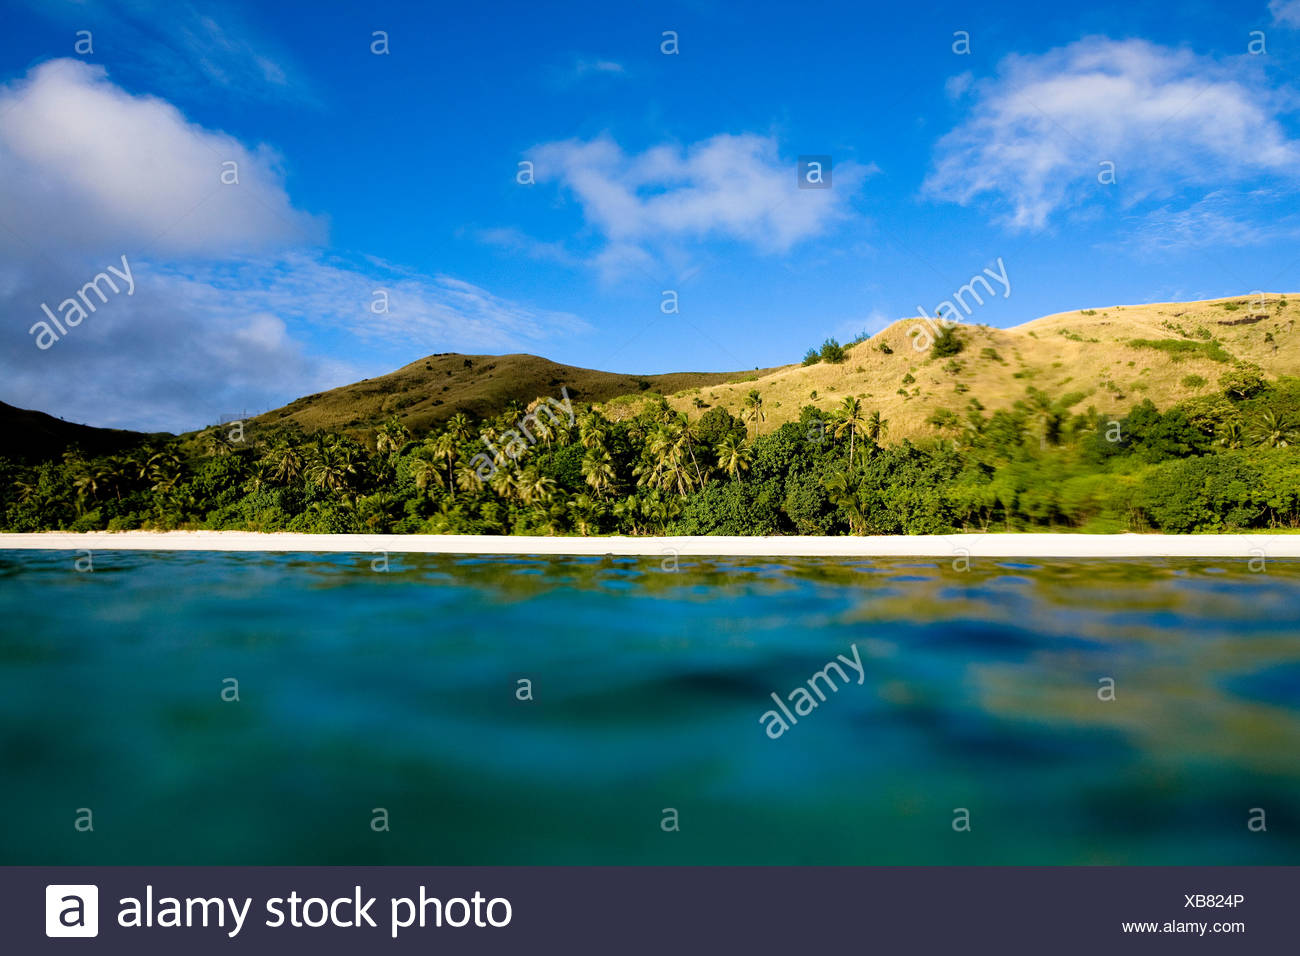 Clouds pass over the rolling hills of the island of Nacula, Fiji. - Stock Image